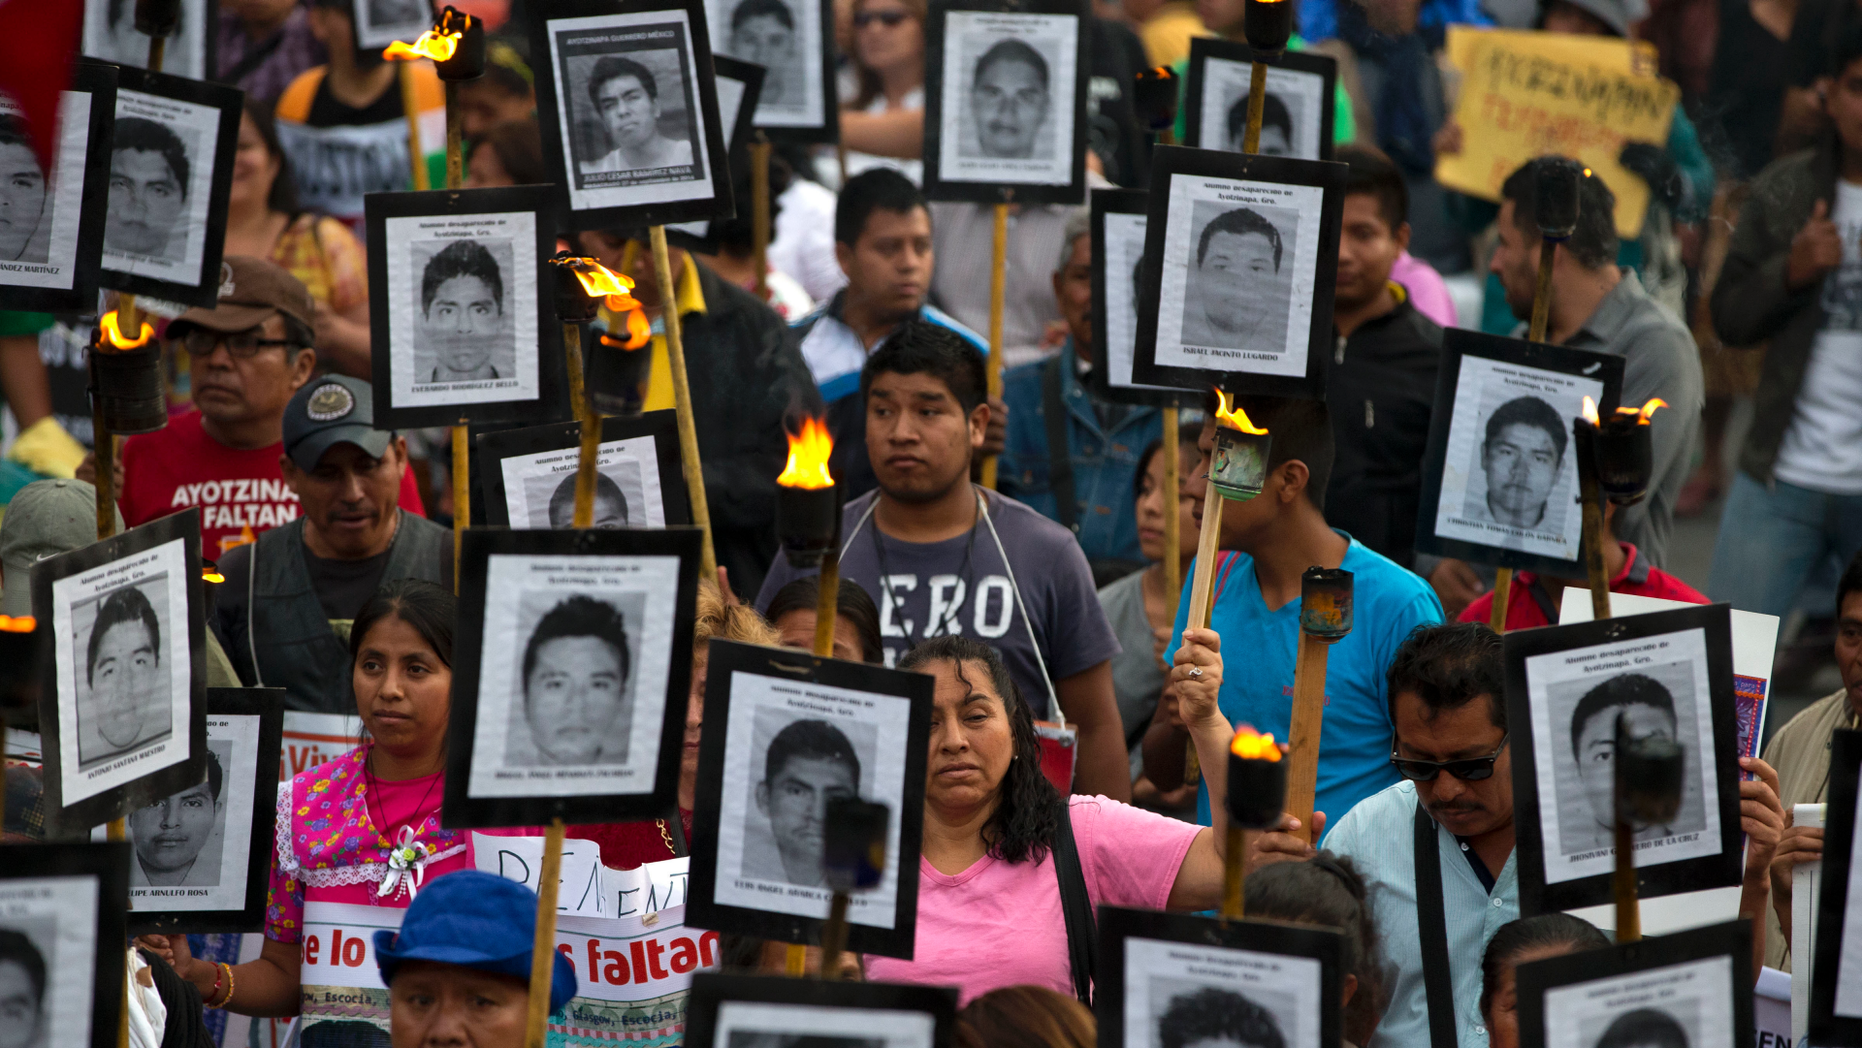 FILE - In this April 26, 2016 file photo, family members and supporters of 43 missing teachers college students carry pictures of the students as they march to demand the case not be closed and that experts' recommendations about new leads be followed, in Mexico City. On Sunday, March 24, 2019, Mexico's President Andres Manuel Lopez Obrador vowed to ramp up efforts to identify thousands of bodies in government custody at forensic institutions across Mexico, while thousands more Mexicans are missing, their bodies presumed to be in clandestine graves. (AP Photo/Rebecca Blackwell, File)